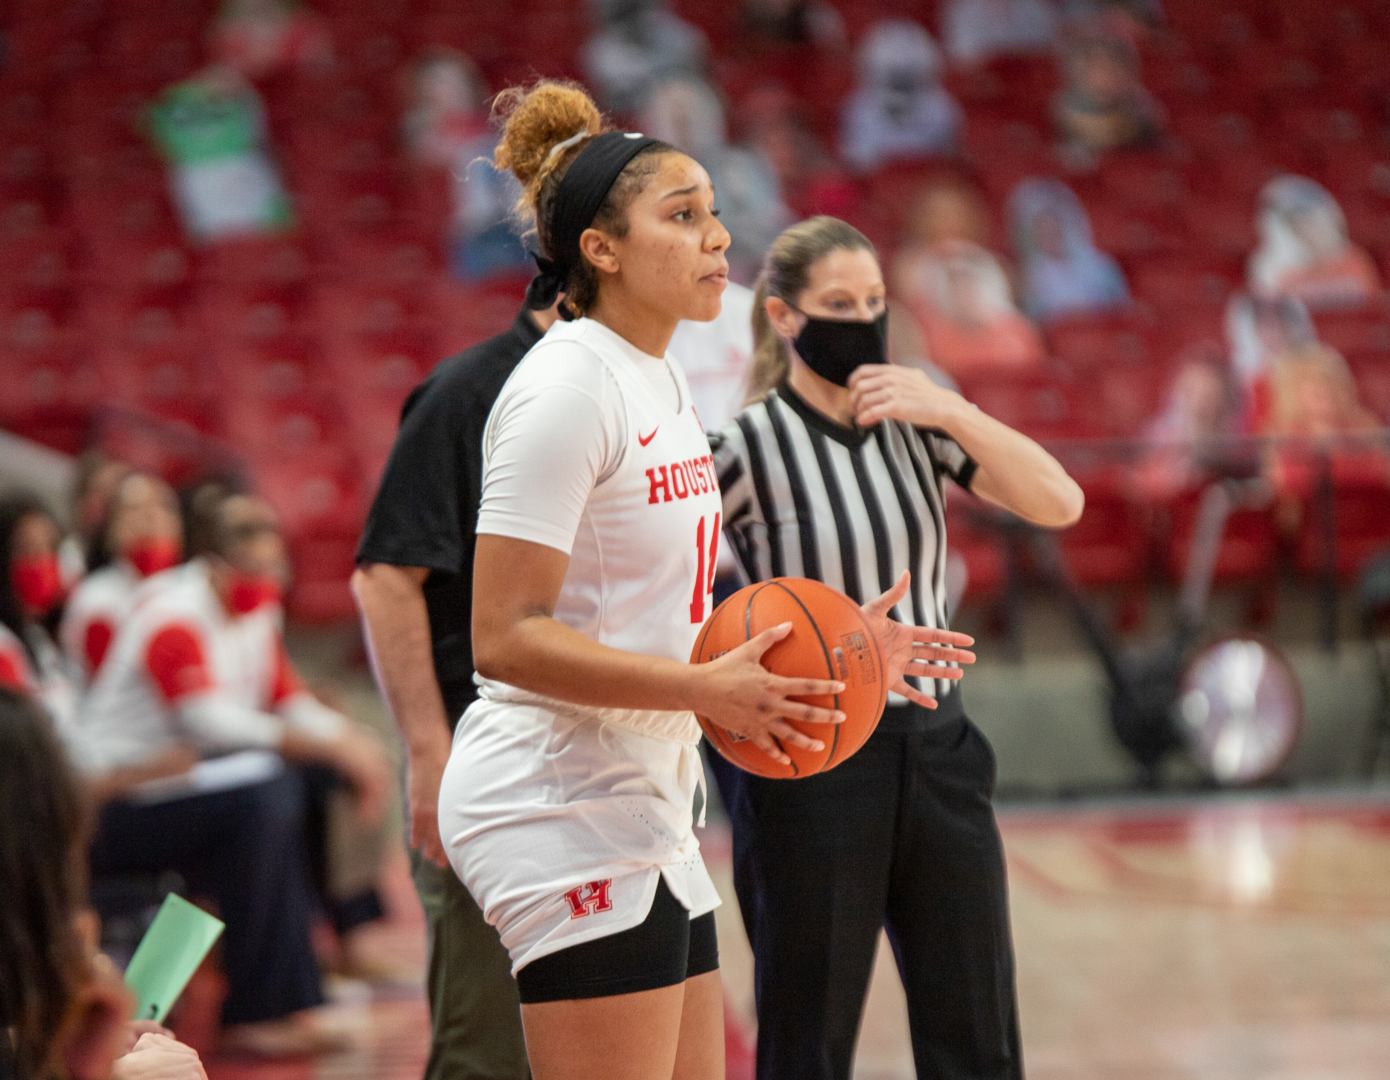 Laila Blair capped off her strong freshman season with a team-high 12 points to lead UH women's basketball over Arizona State | Andy Yanez/The Cougar